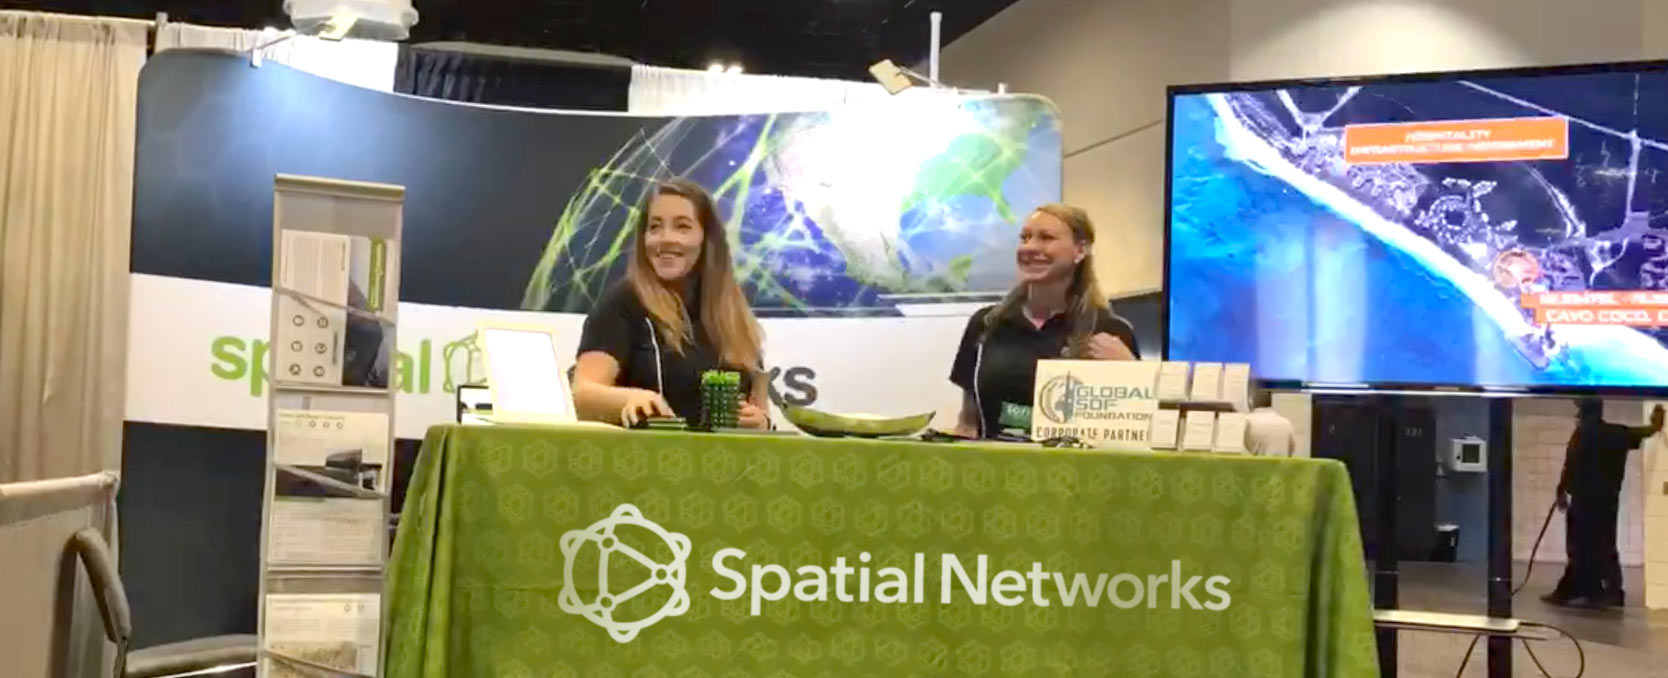 Spatial Networks at SOFIC 2017